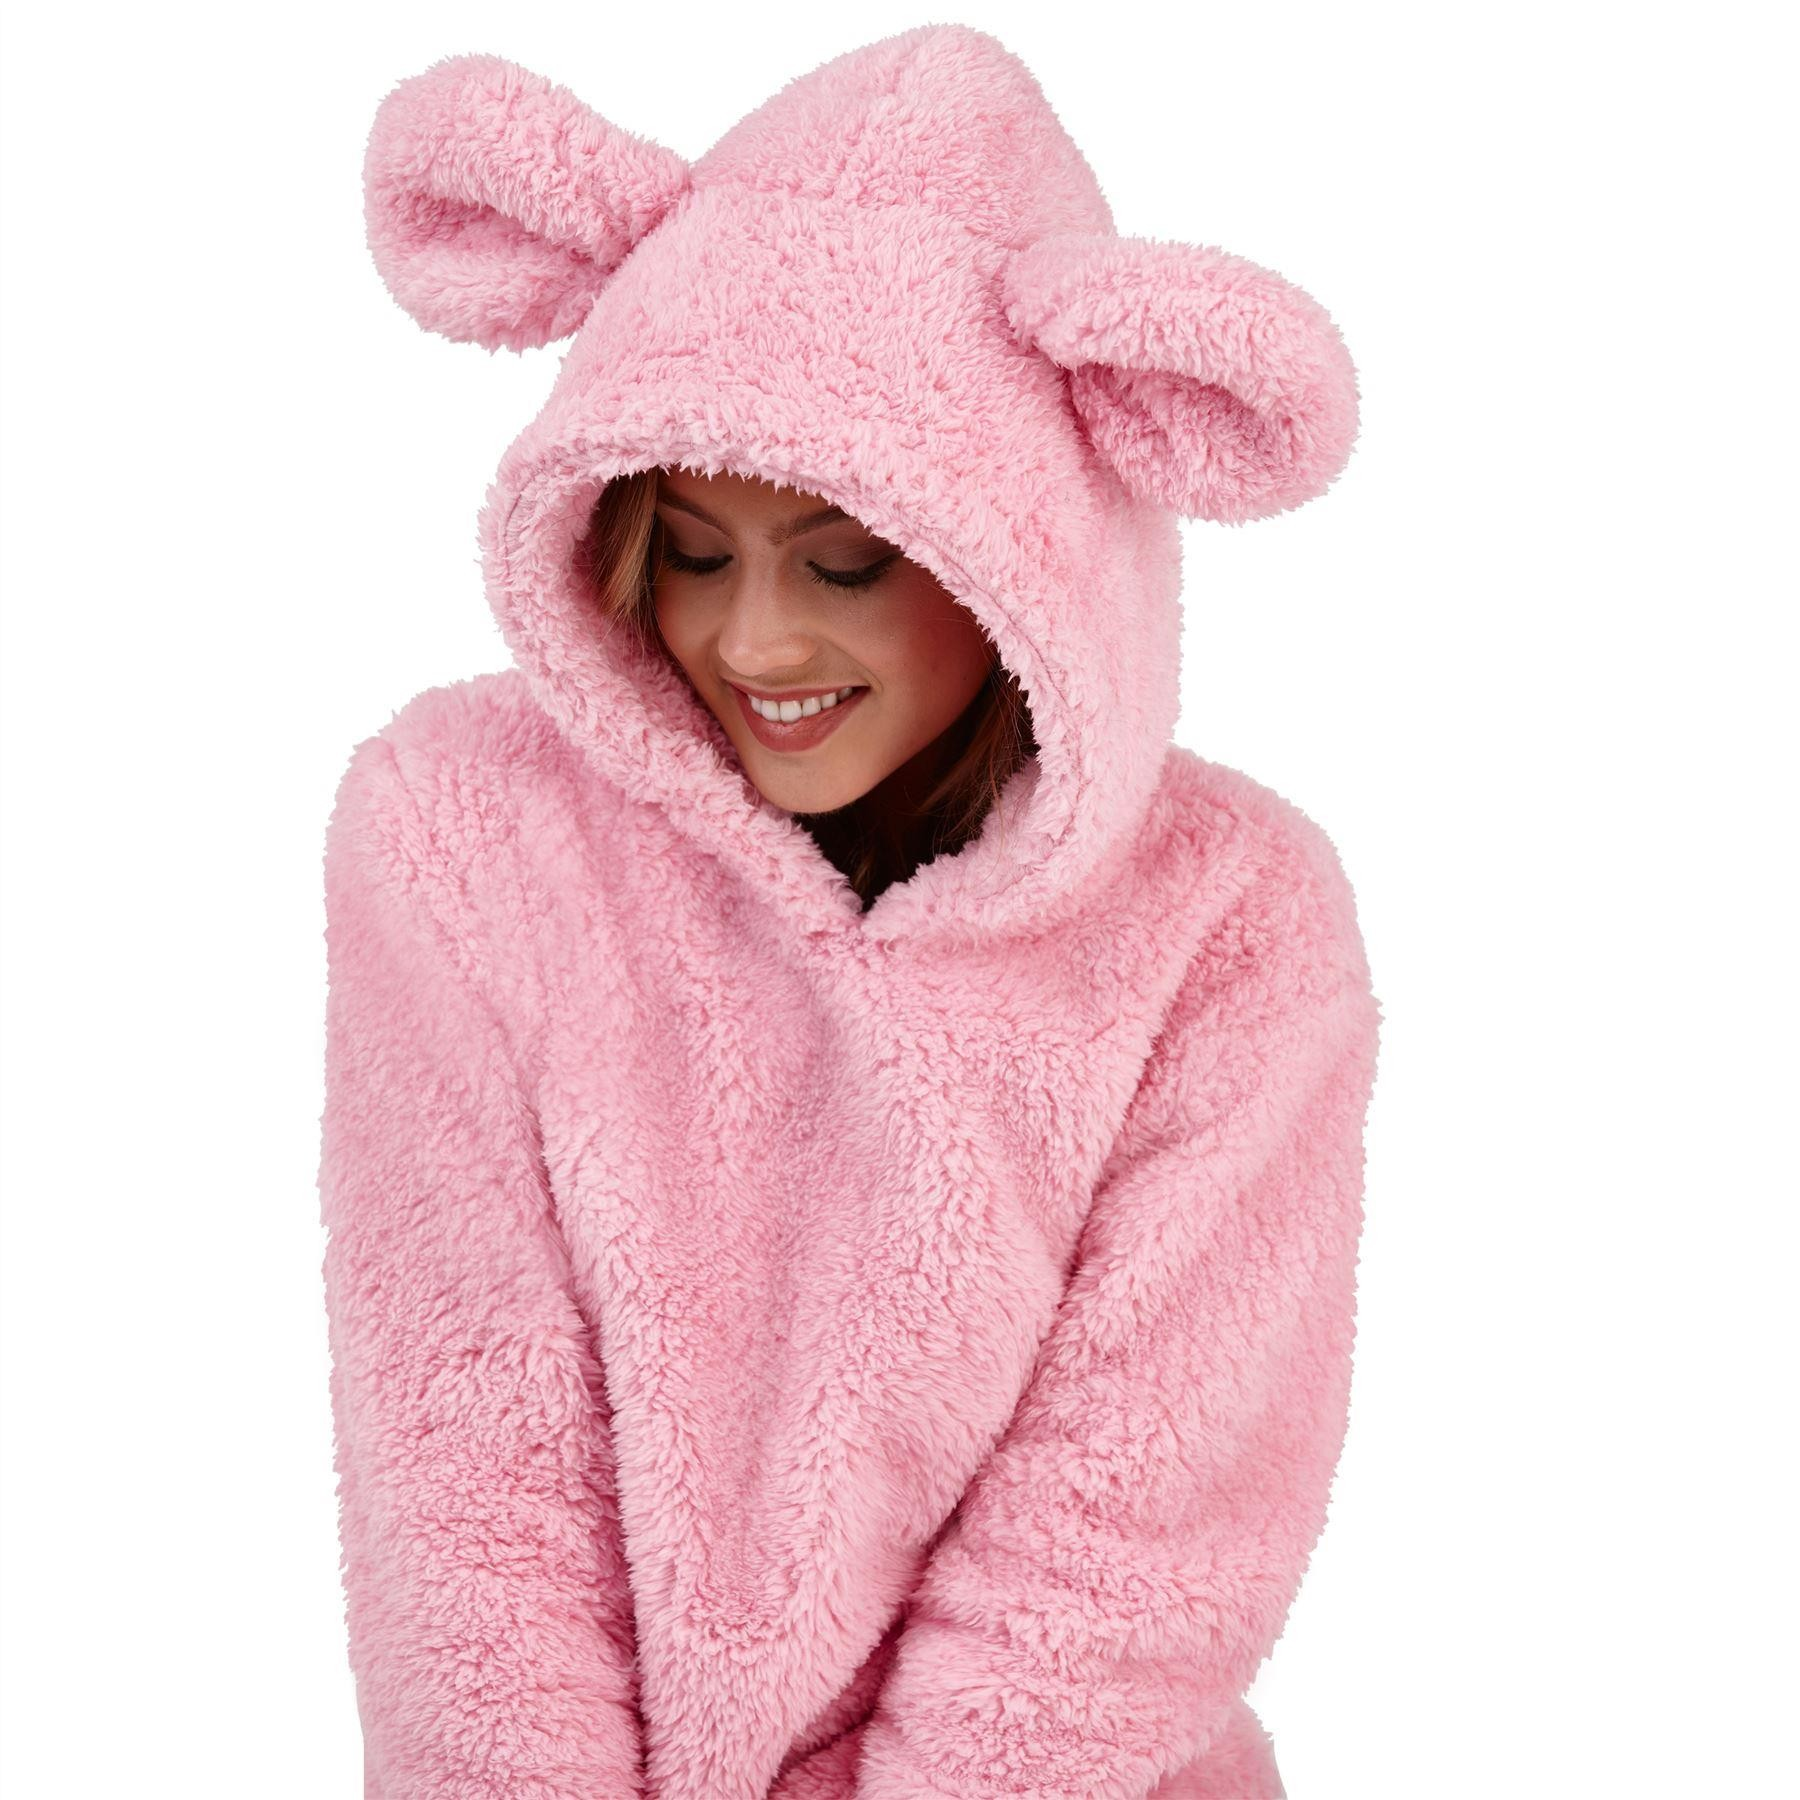 dc0f344f1 Loungeable Boutique Ladies Sherpa Fleece Mouse Twosie - Pink